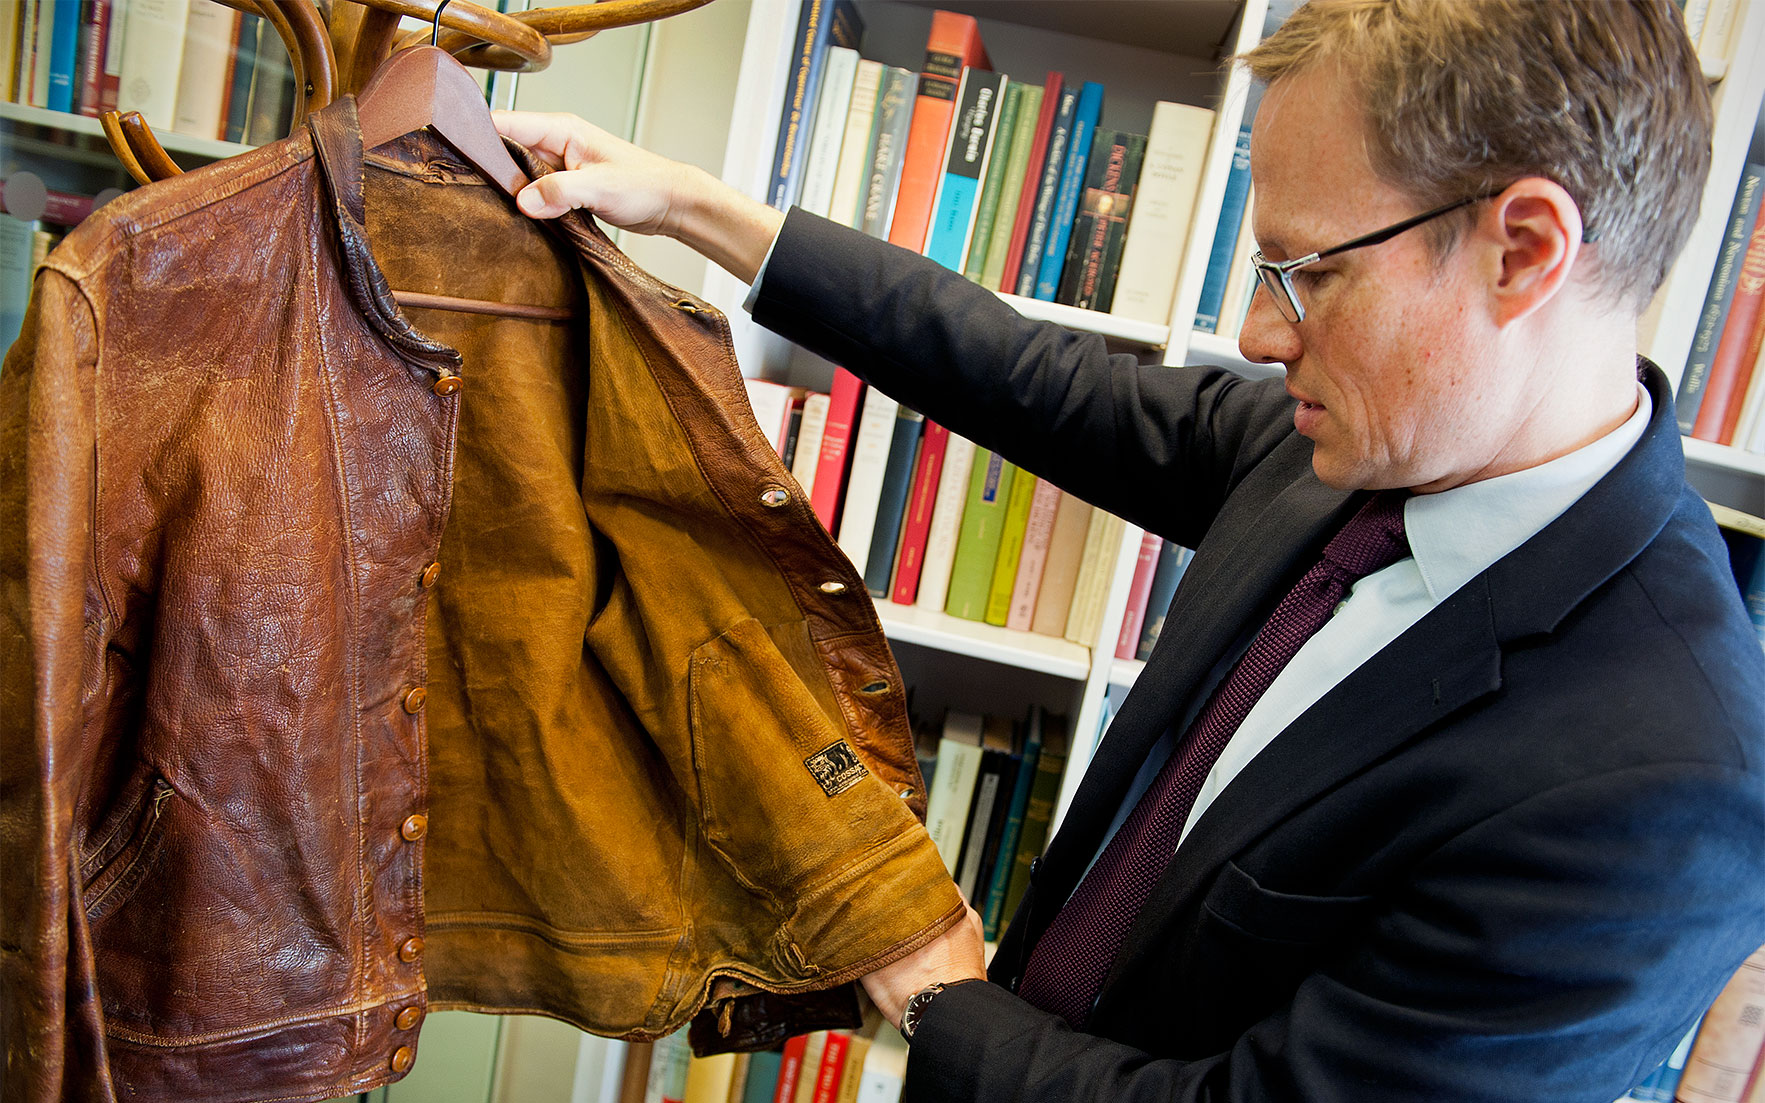 Thomas Venning 5 minutes with Einstein's leather jacket